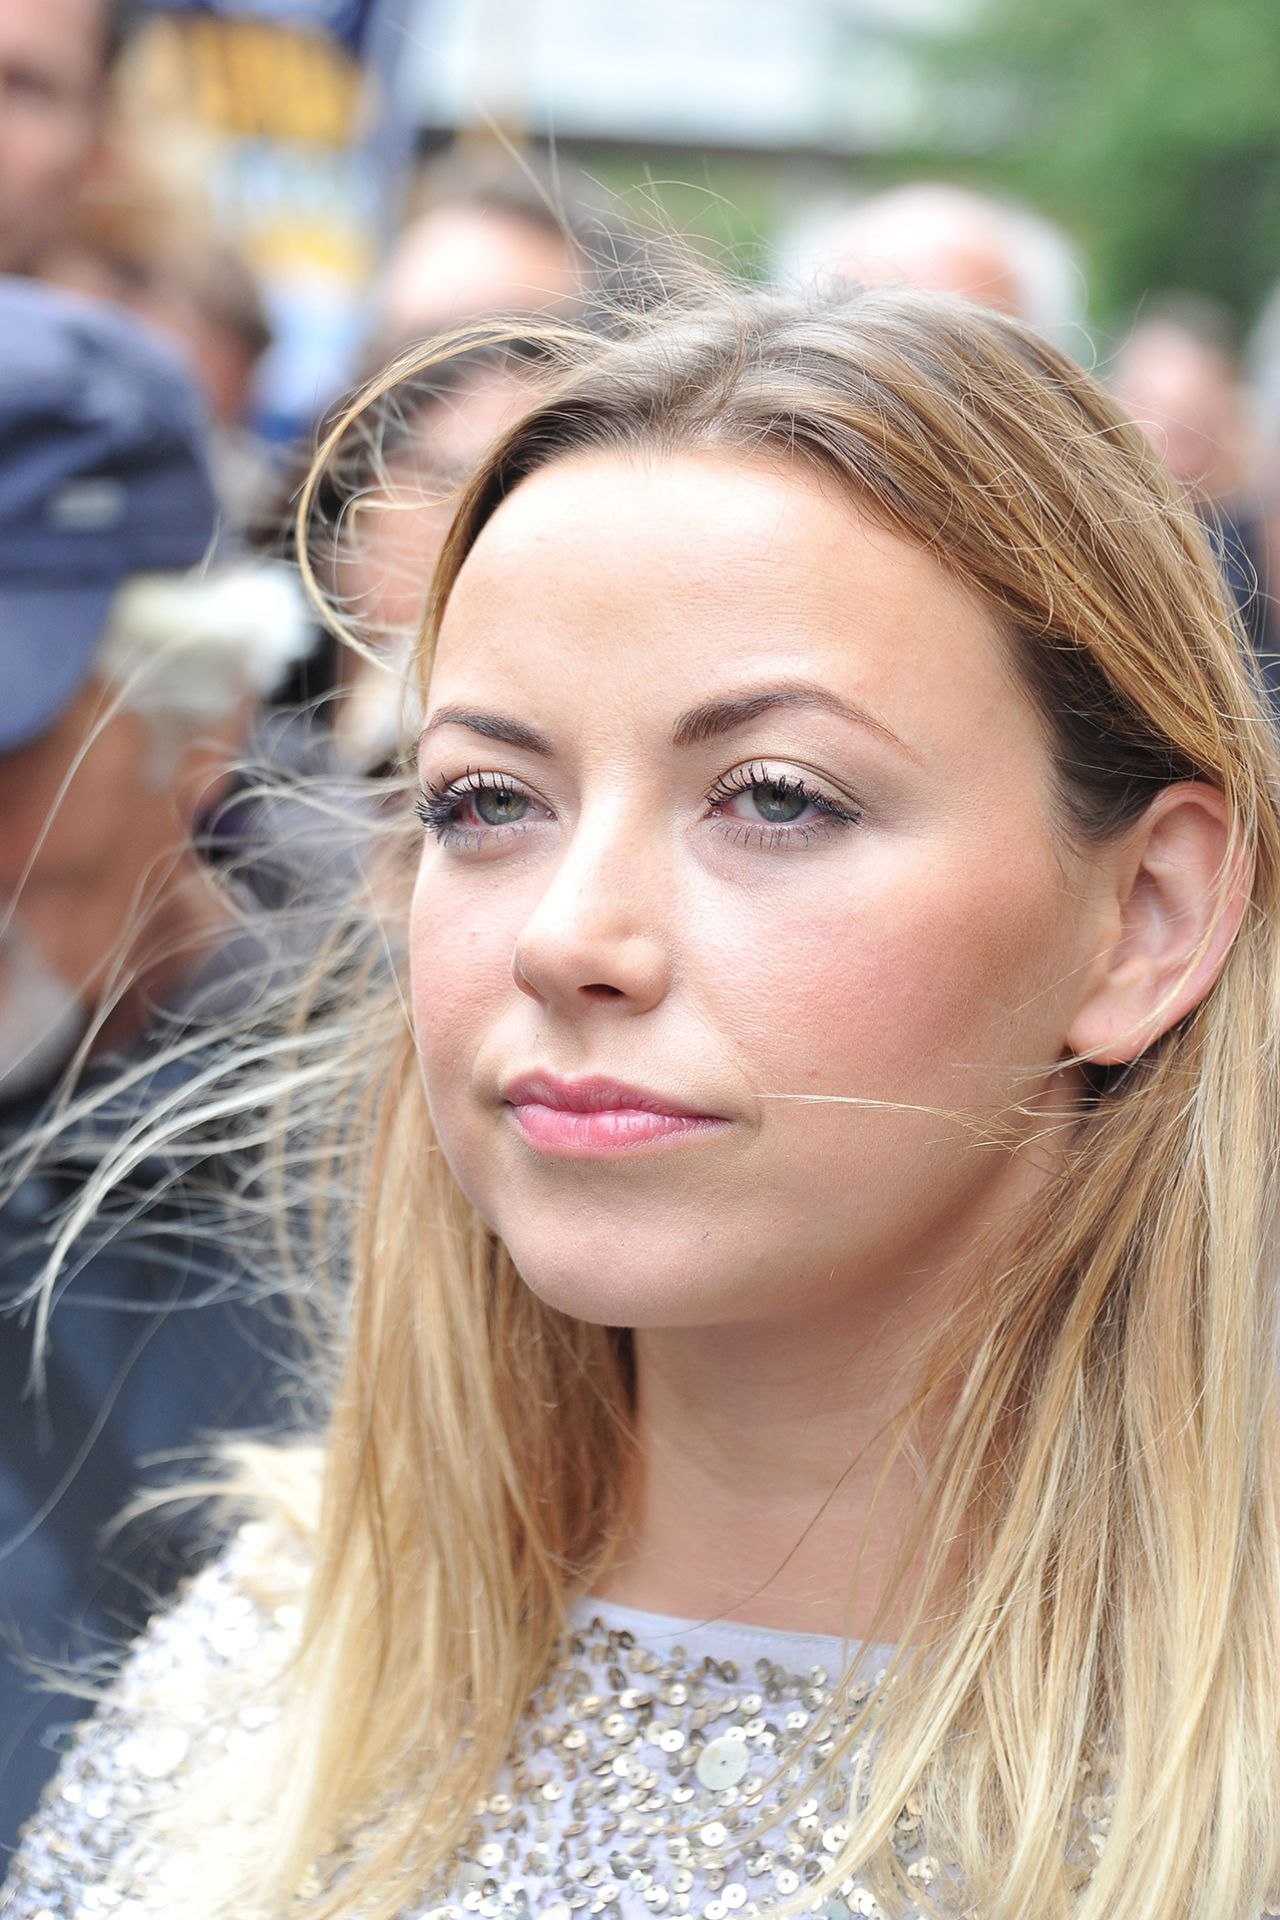 charlotte church - photo #50